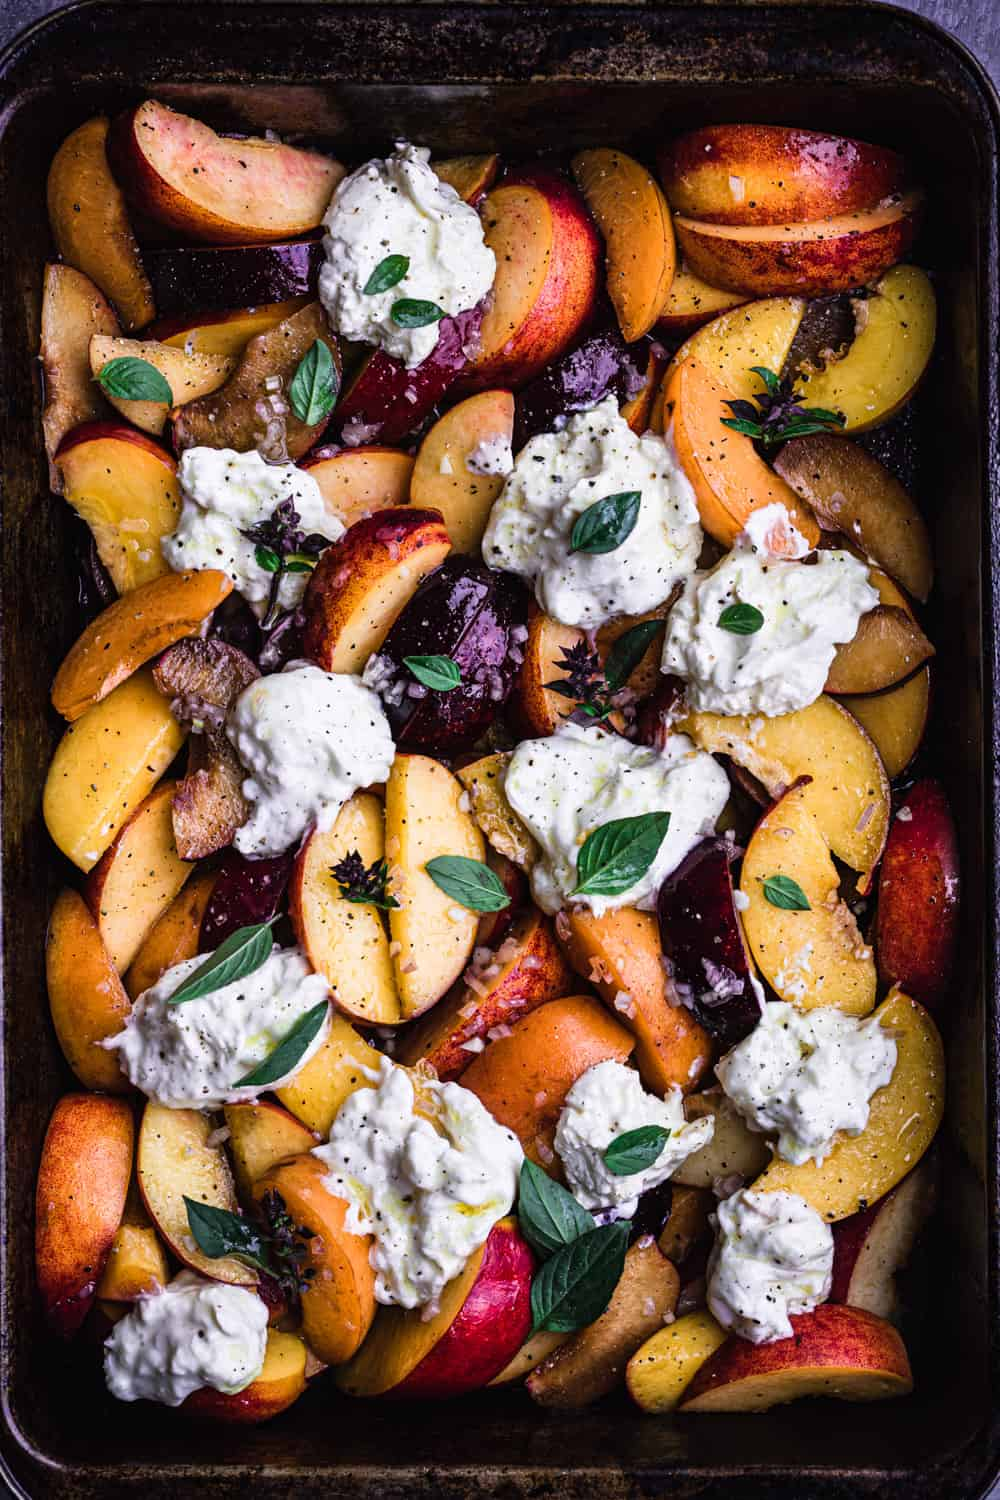 Stone Fruit & Burrata salad with mint and balsamic vinaigrette. There's peaches, nectarines and plums.